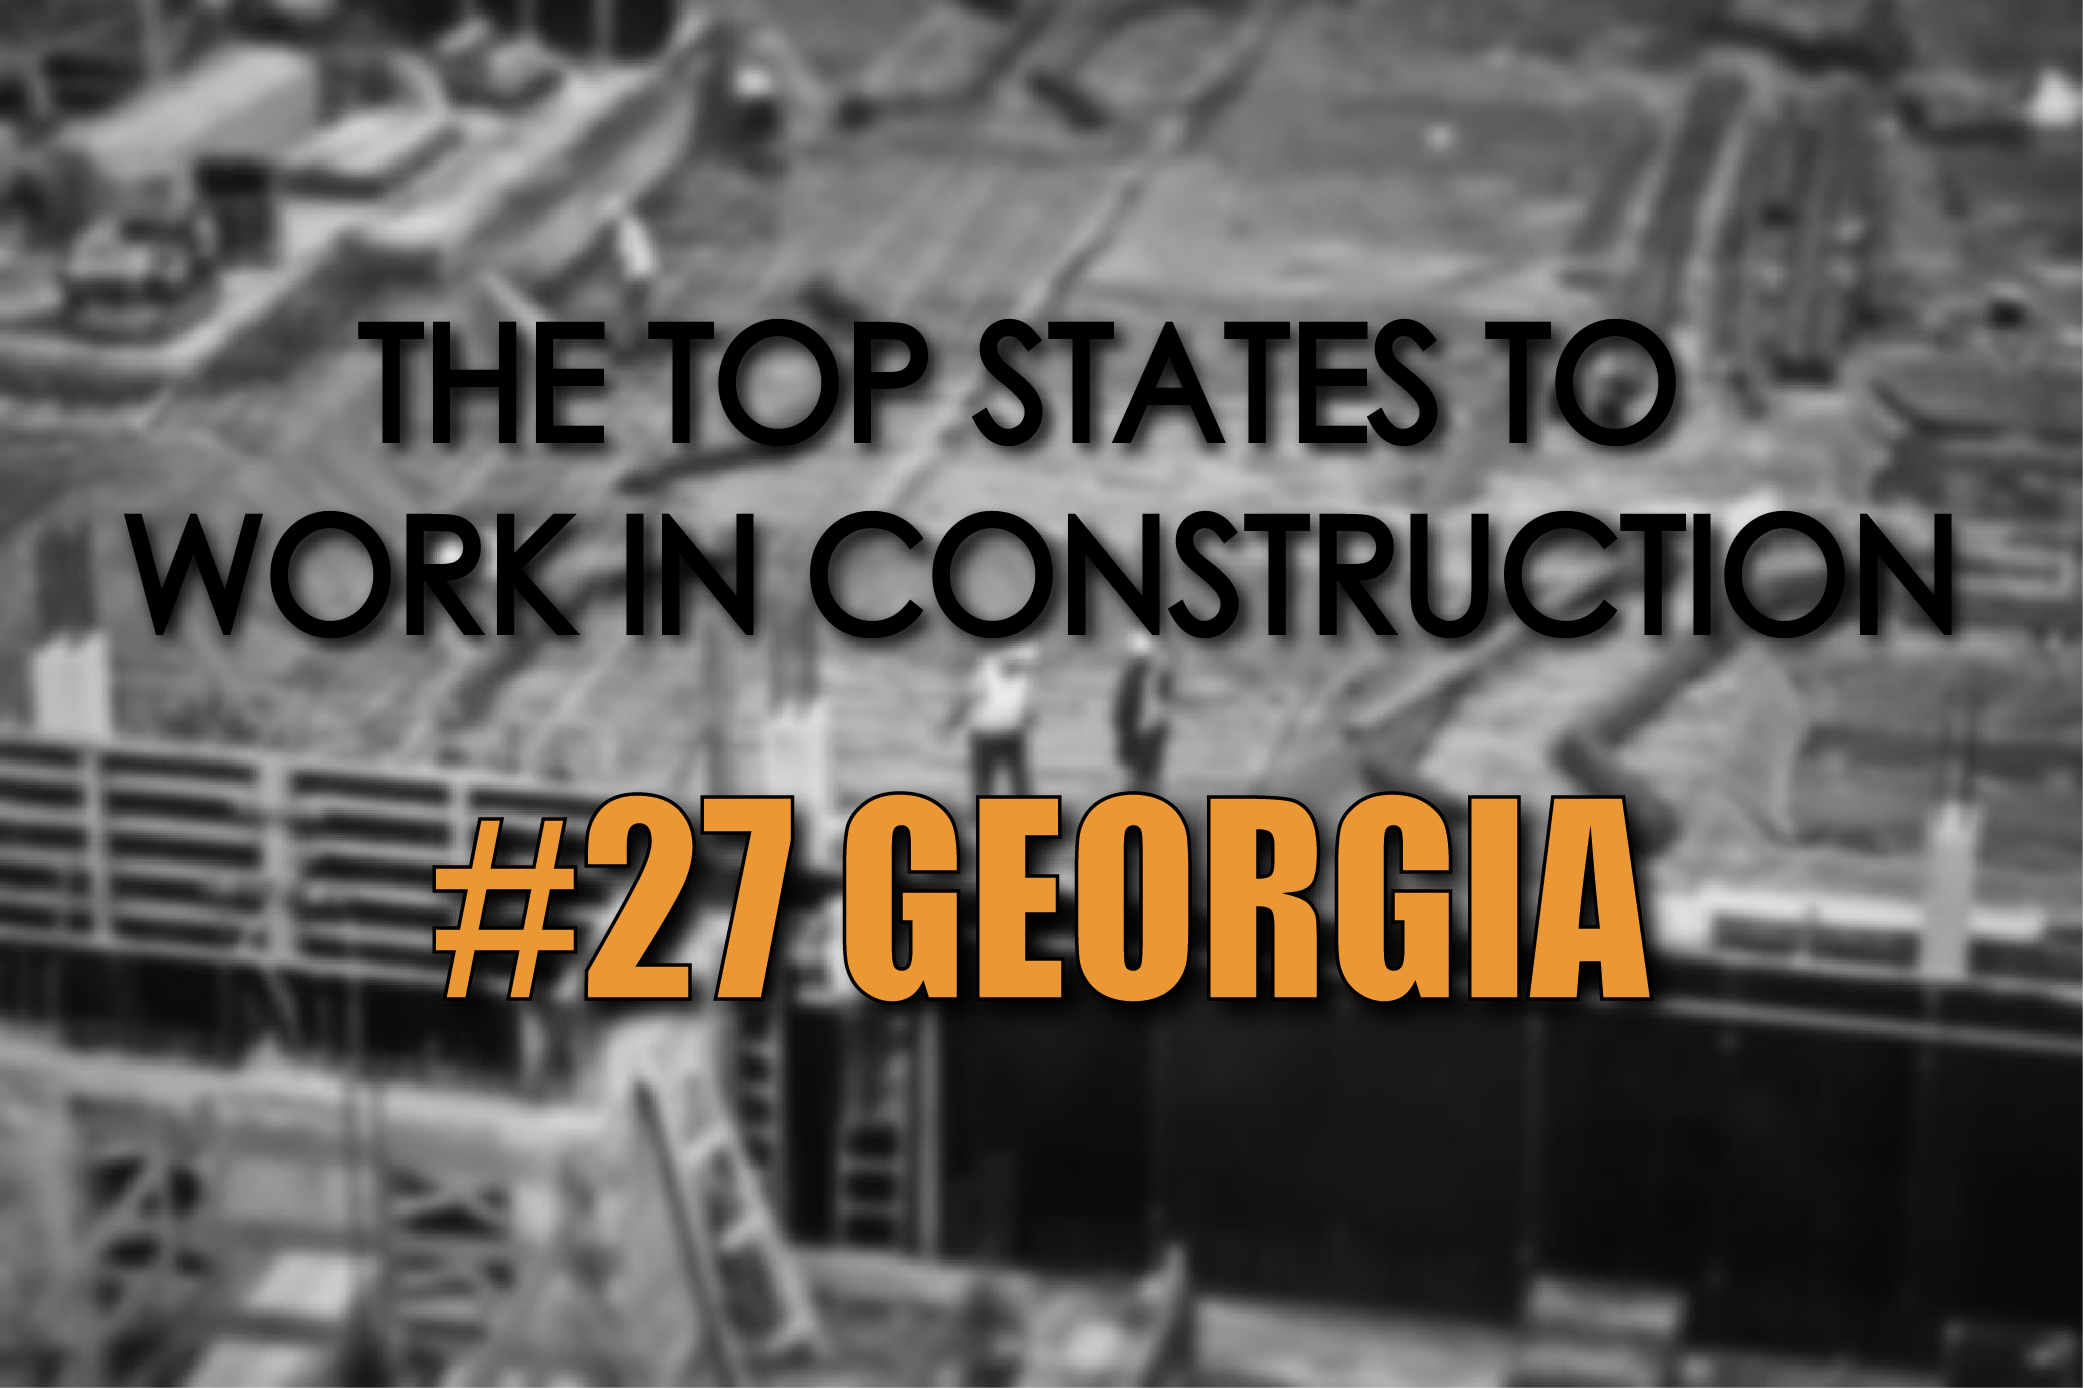 Georgia top states to work in construction